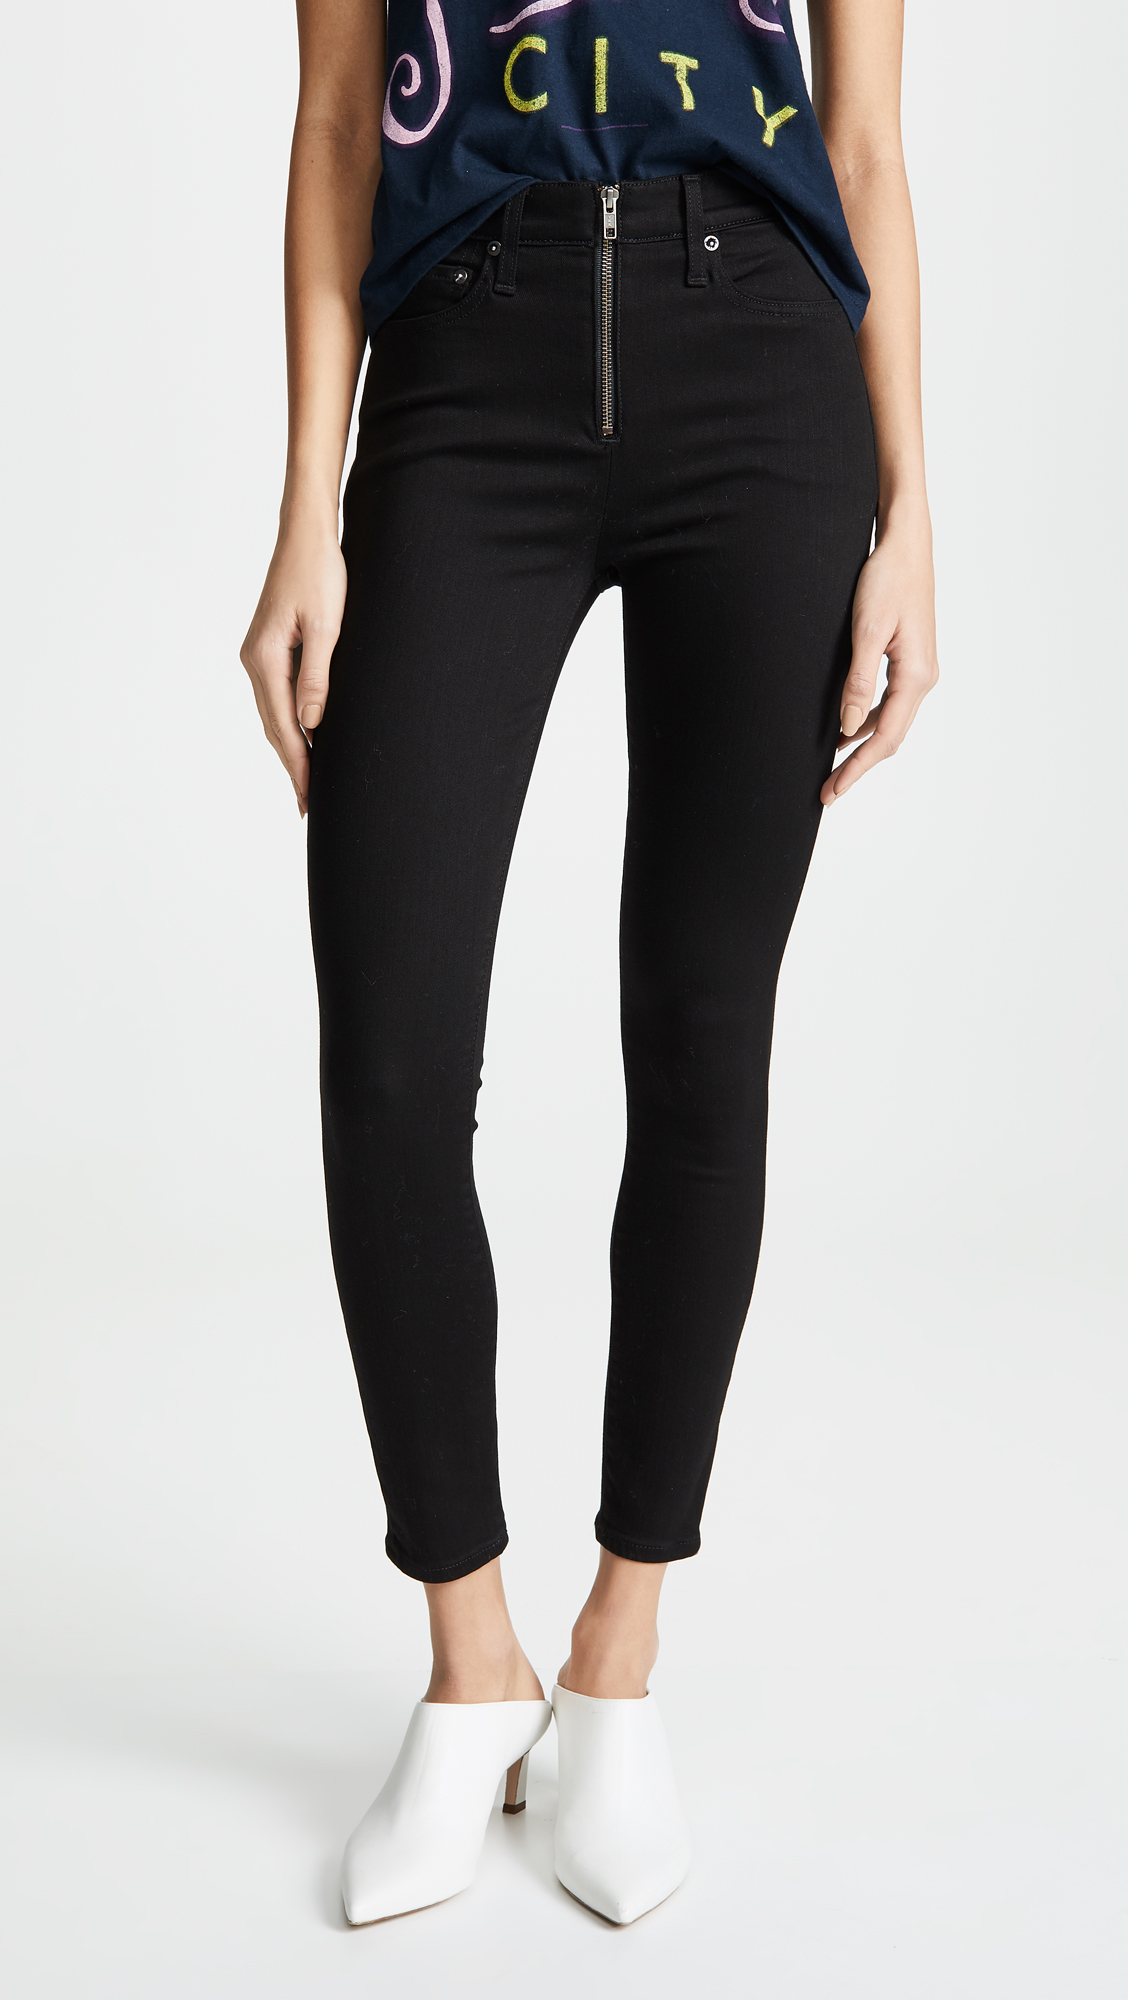 AO.LA by alice + olivia Good HR Ankle Skinny Jeans with Exposed Zipper